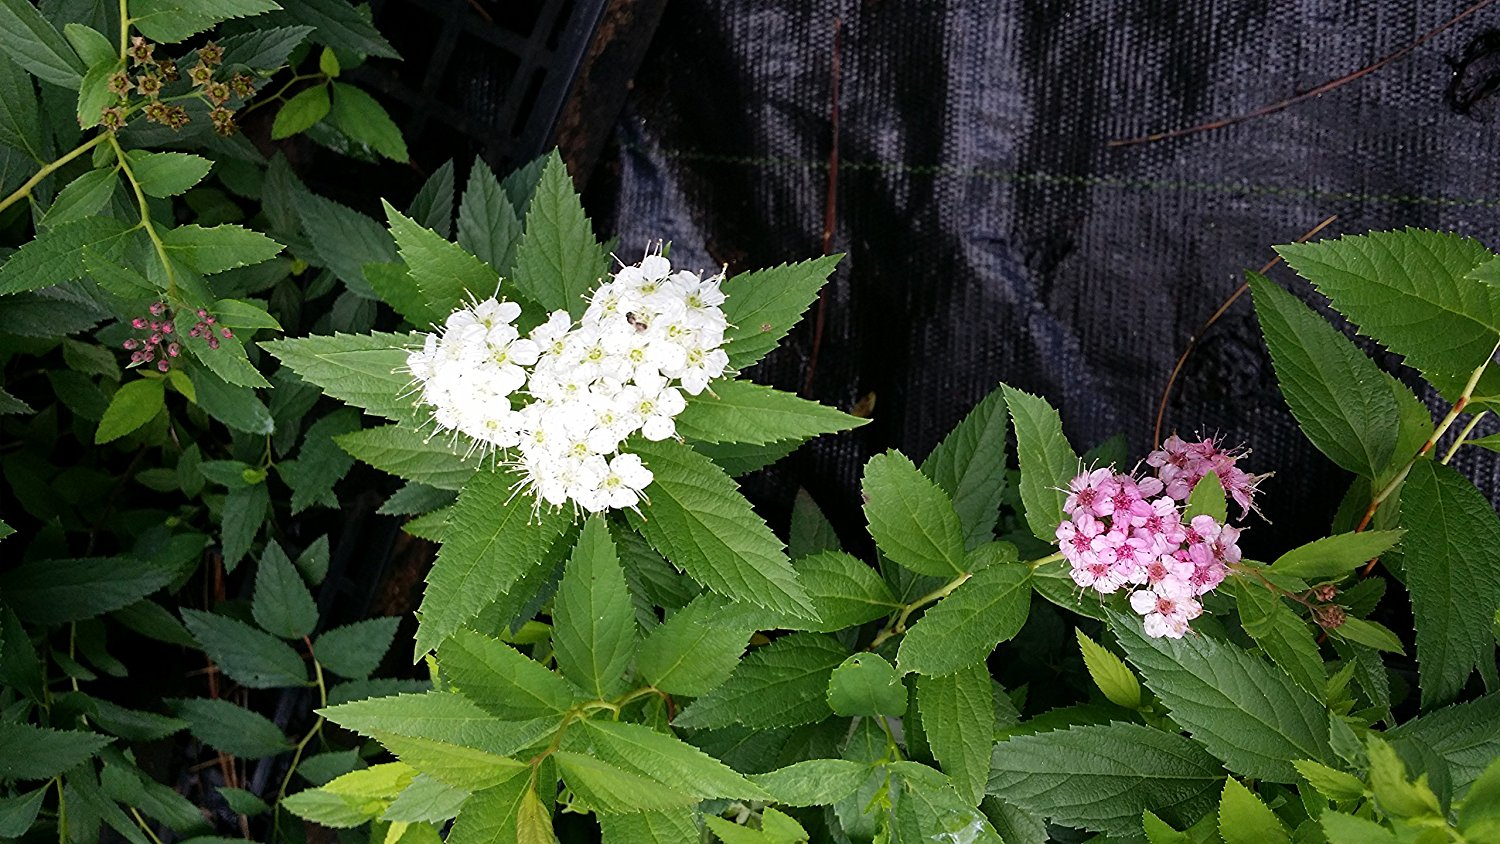 (1 Gallon) Shirobana Spirea, 3 Different Colored (White, Light Pink and Dk Pink) Blooms on the Same Plant, Small Compact Shrub,